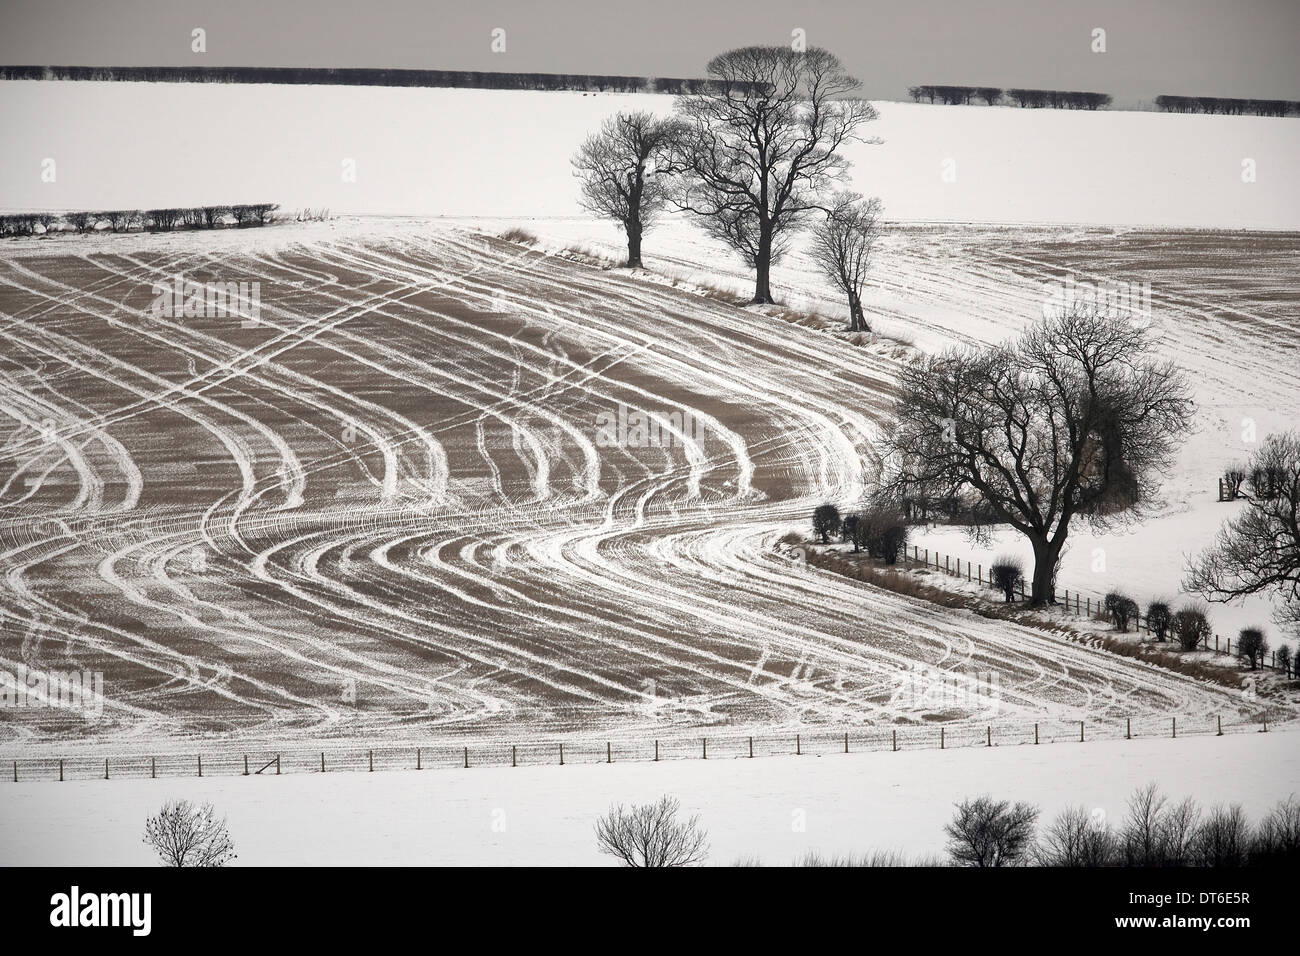 Snow covered farming landscape of the East Yorkshire Wolds near Wharram Percy - Stock Image